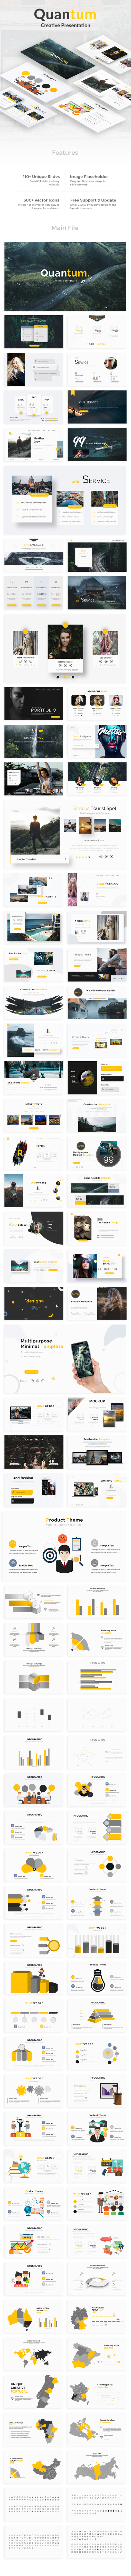 Quantum Creative Google Slide Template - Google Slides Presentation Templates